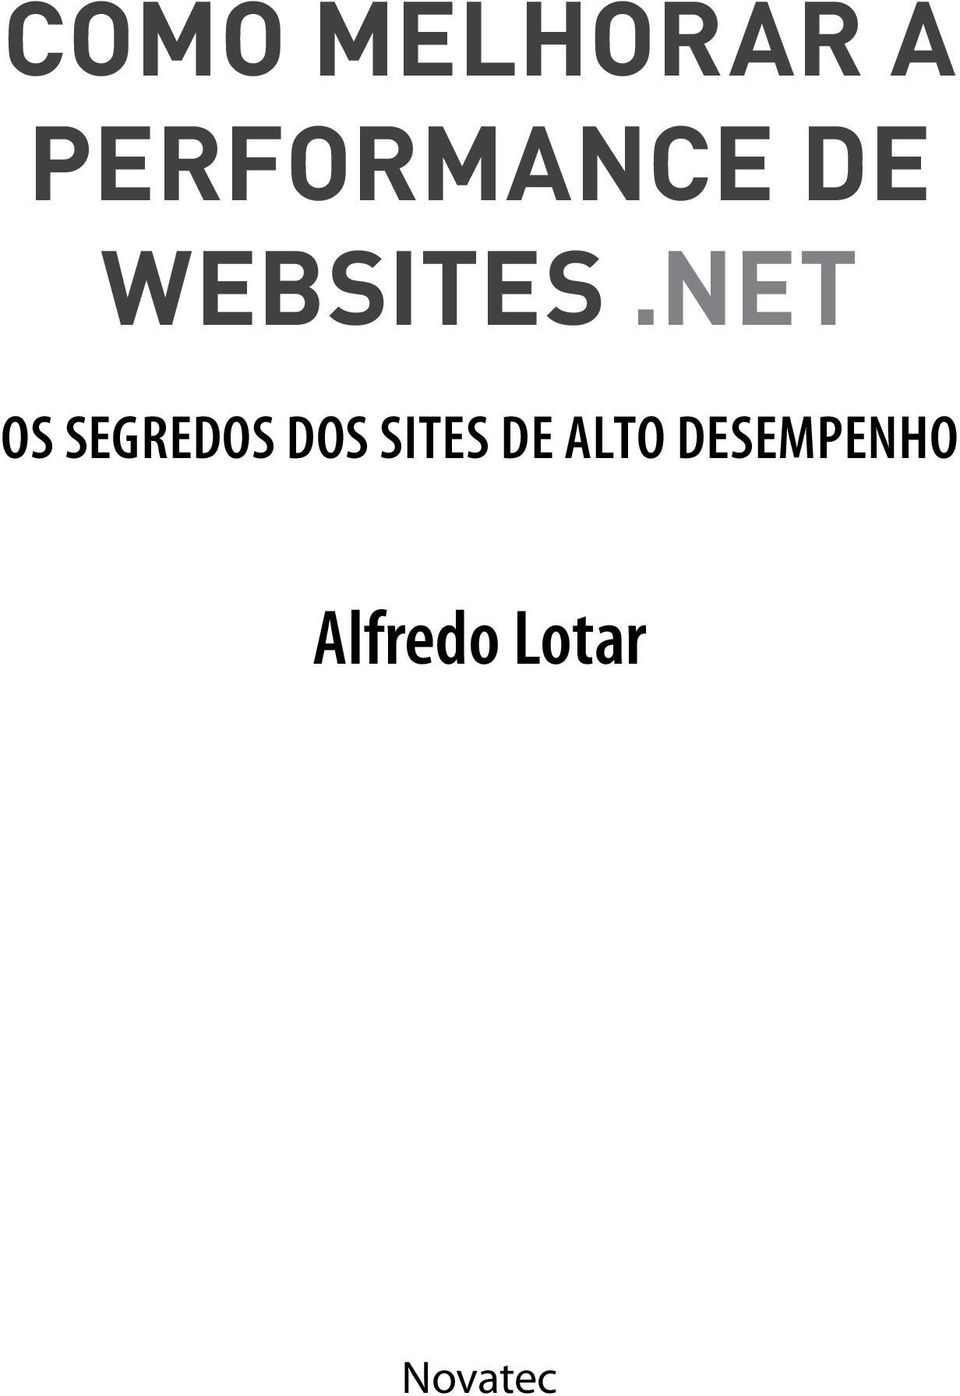 net Os segredos dos sites